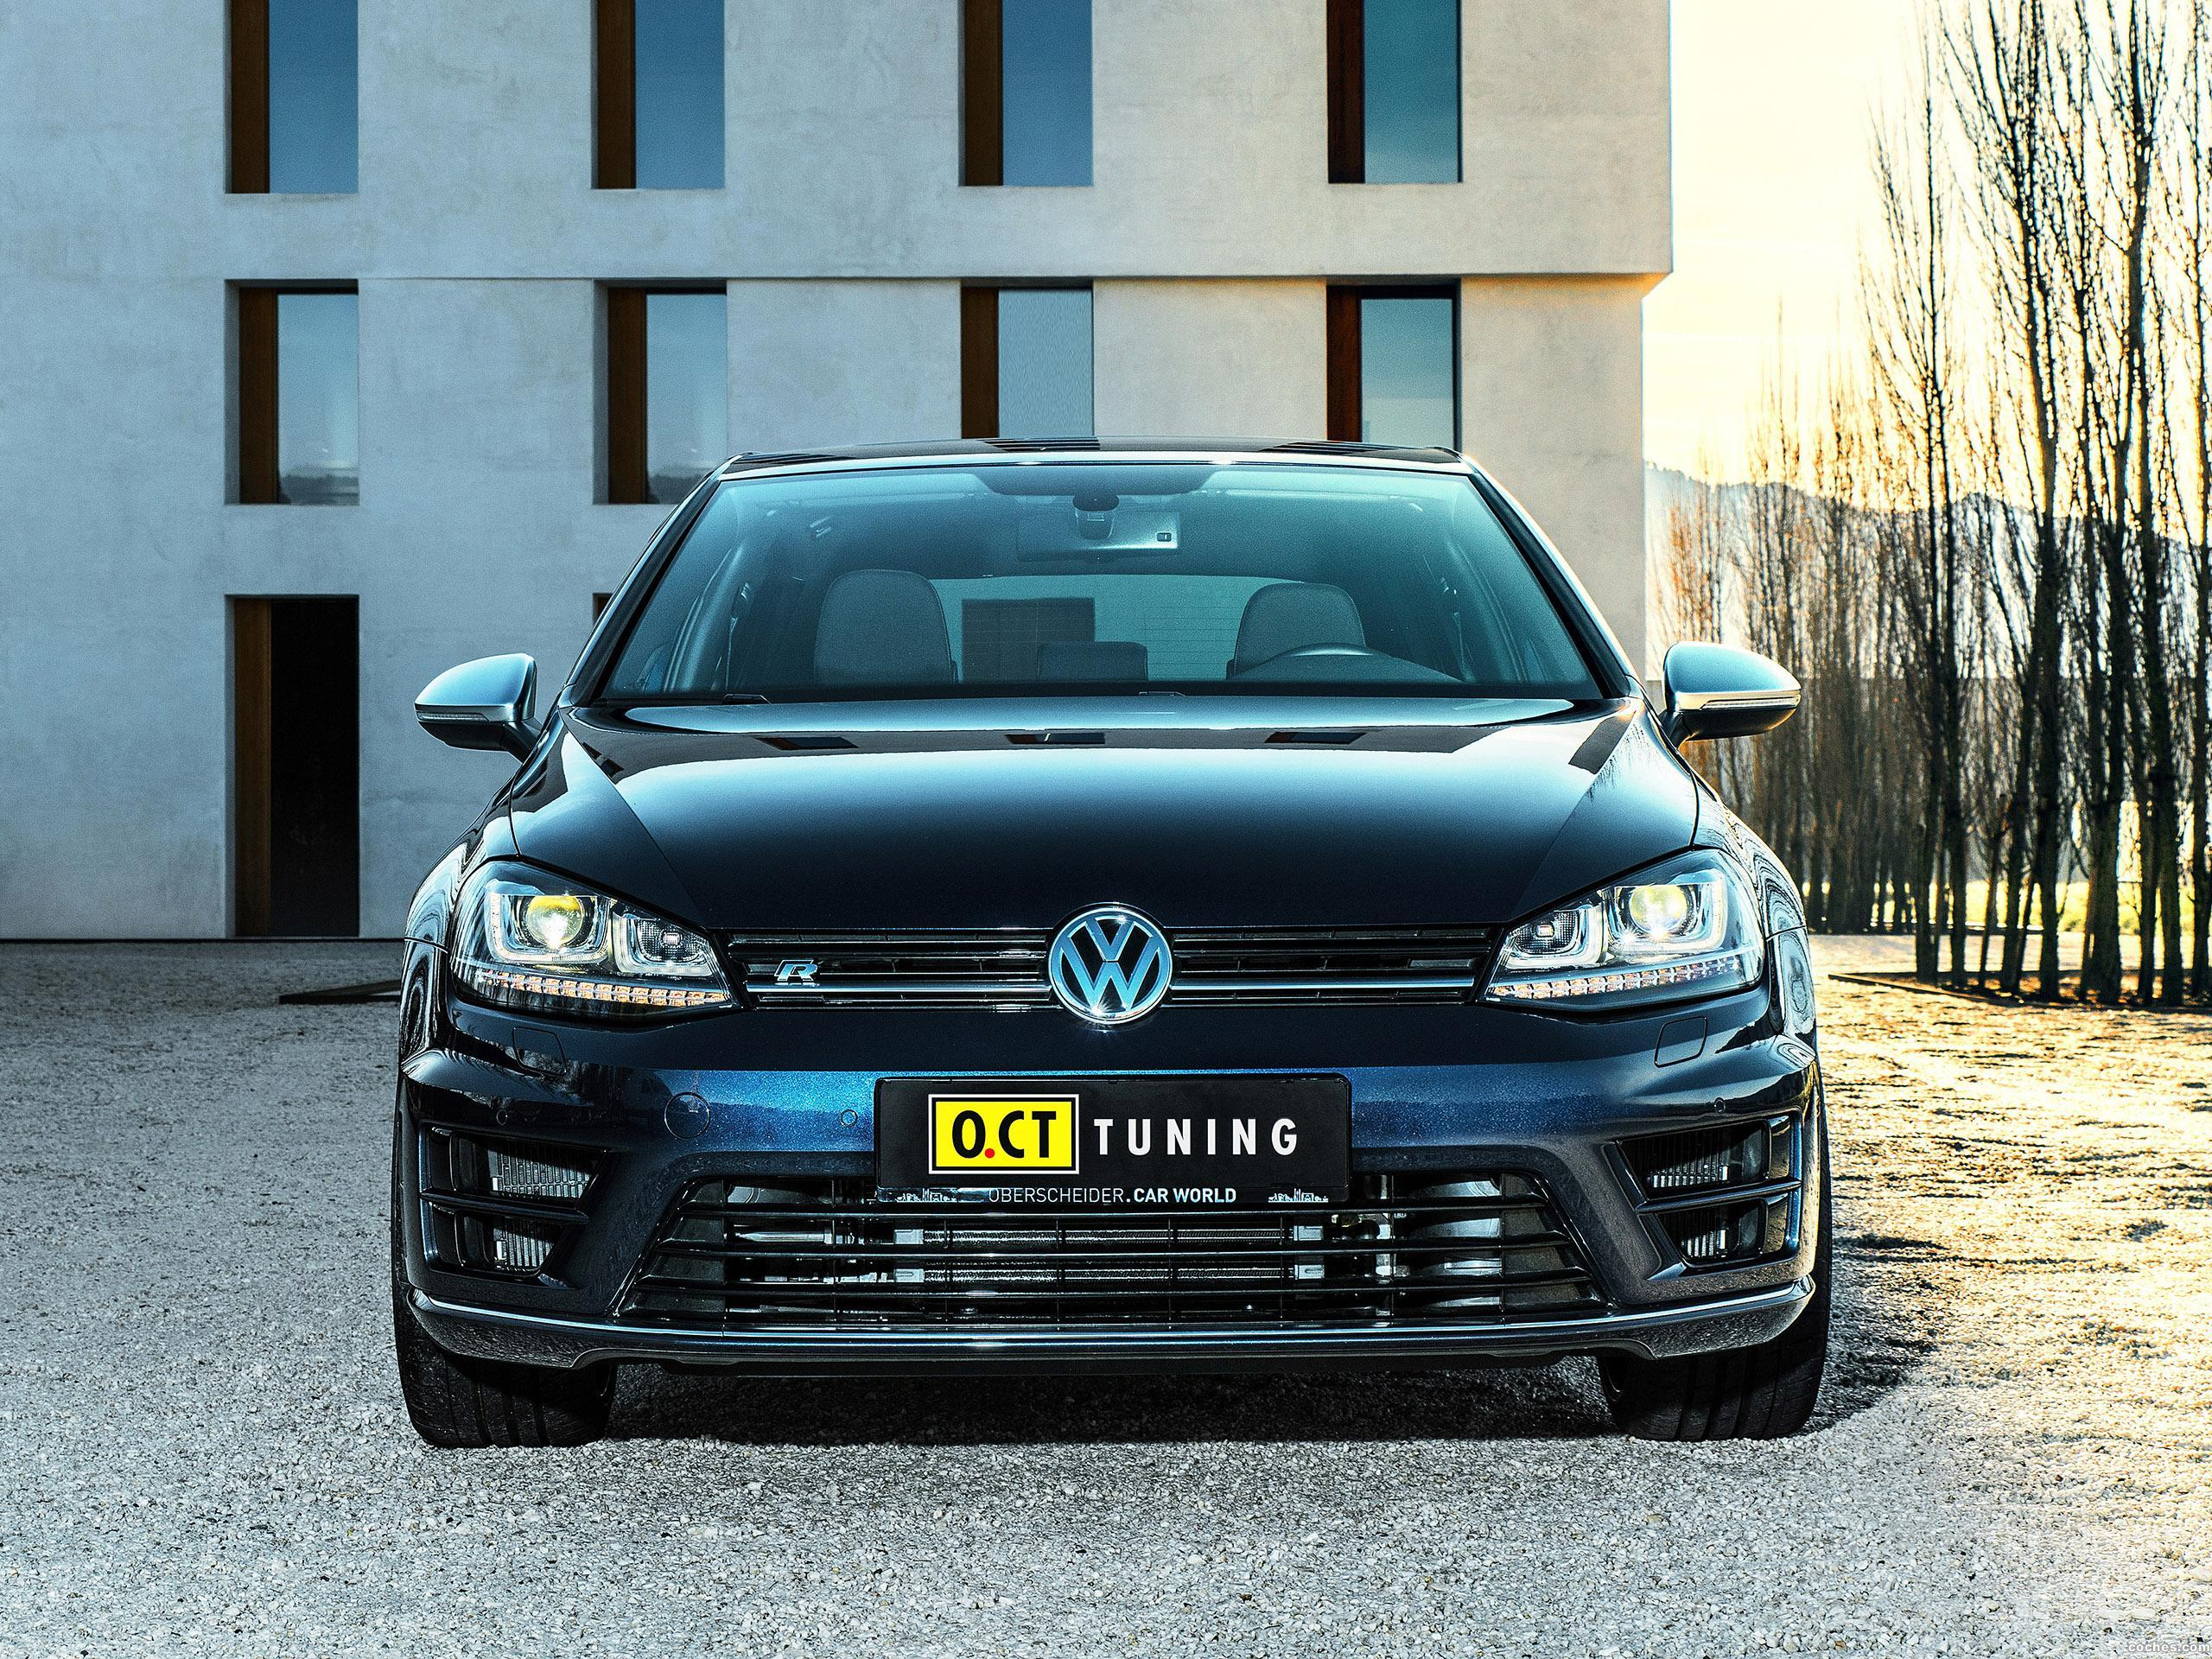 Foto 0 de OCT Volkswagen Golf R 2016